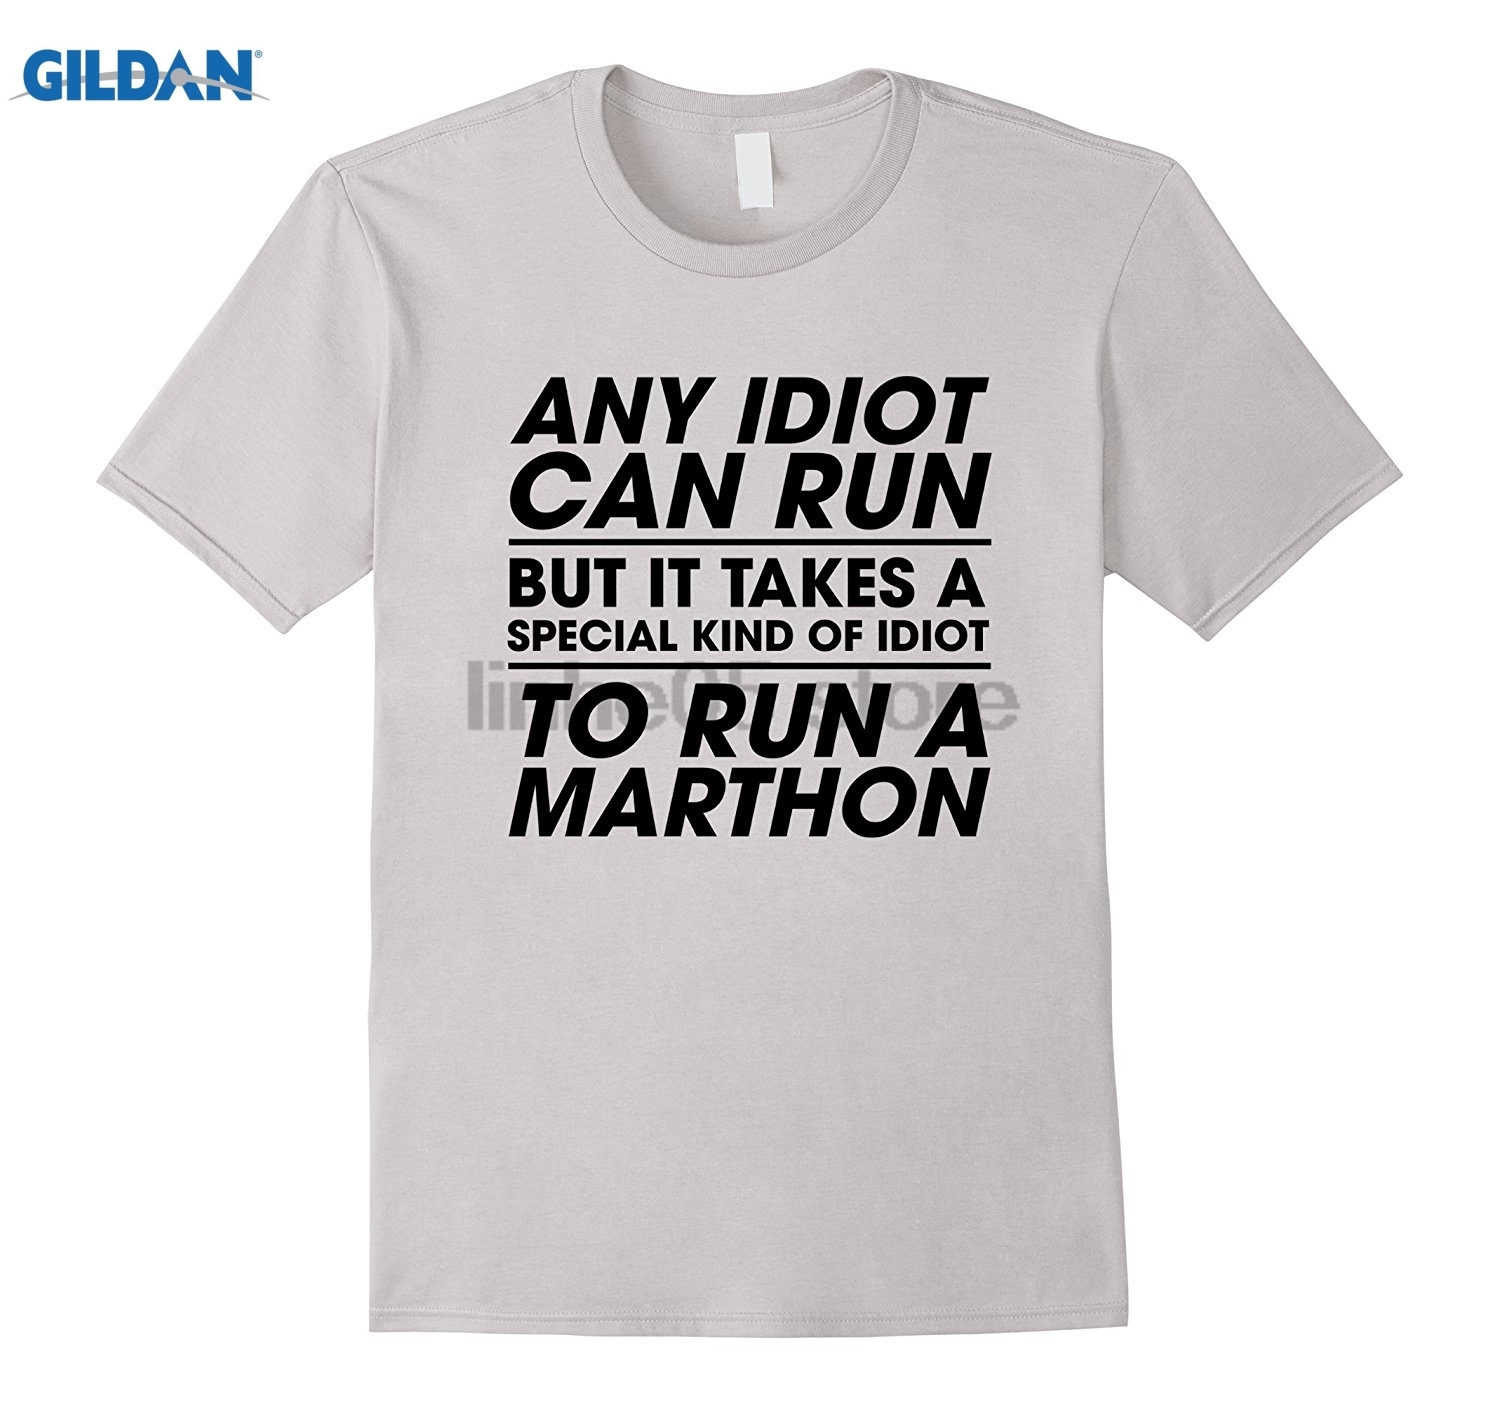 GILDAN Idiot Can Marthon Tshirt Best Runner Gifts Dress female T-shirt ...